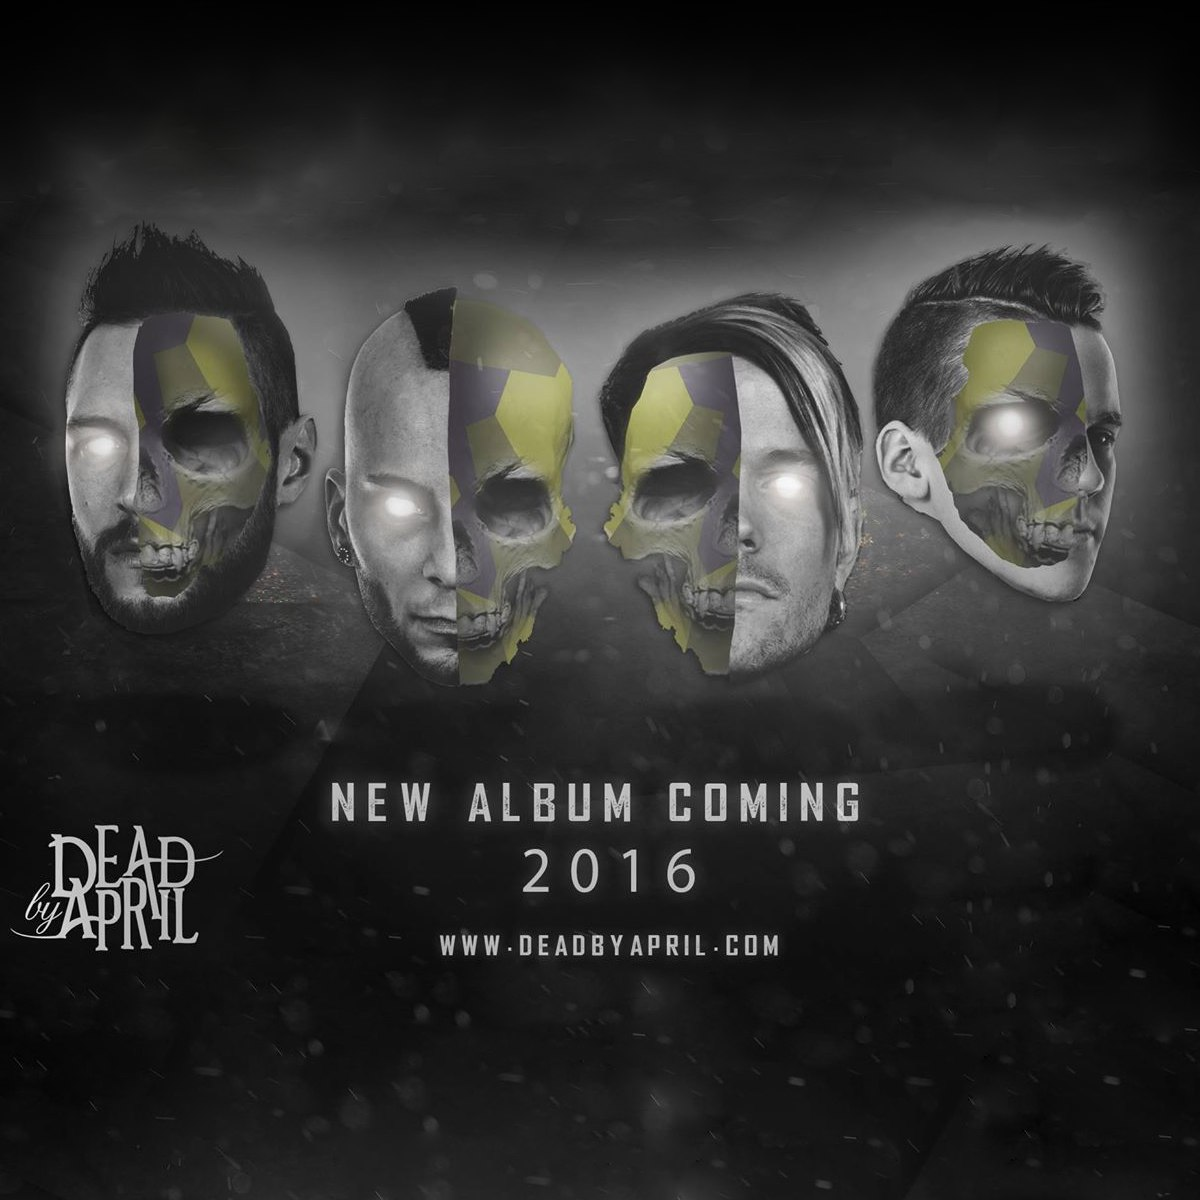 Dead by April - Demo Teasers (2016)